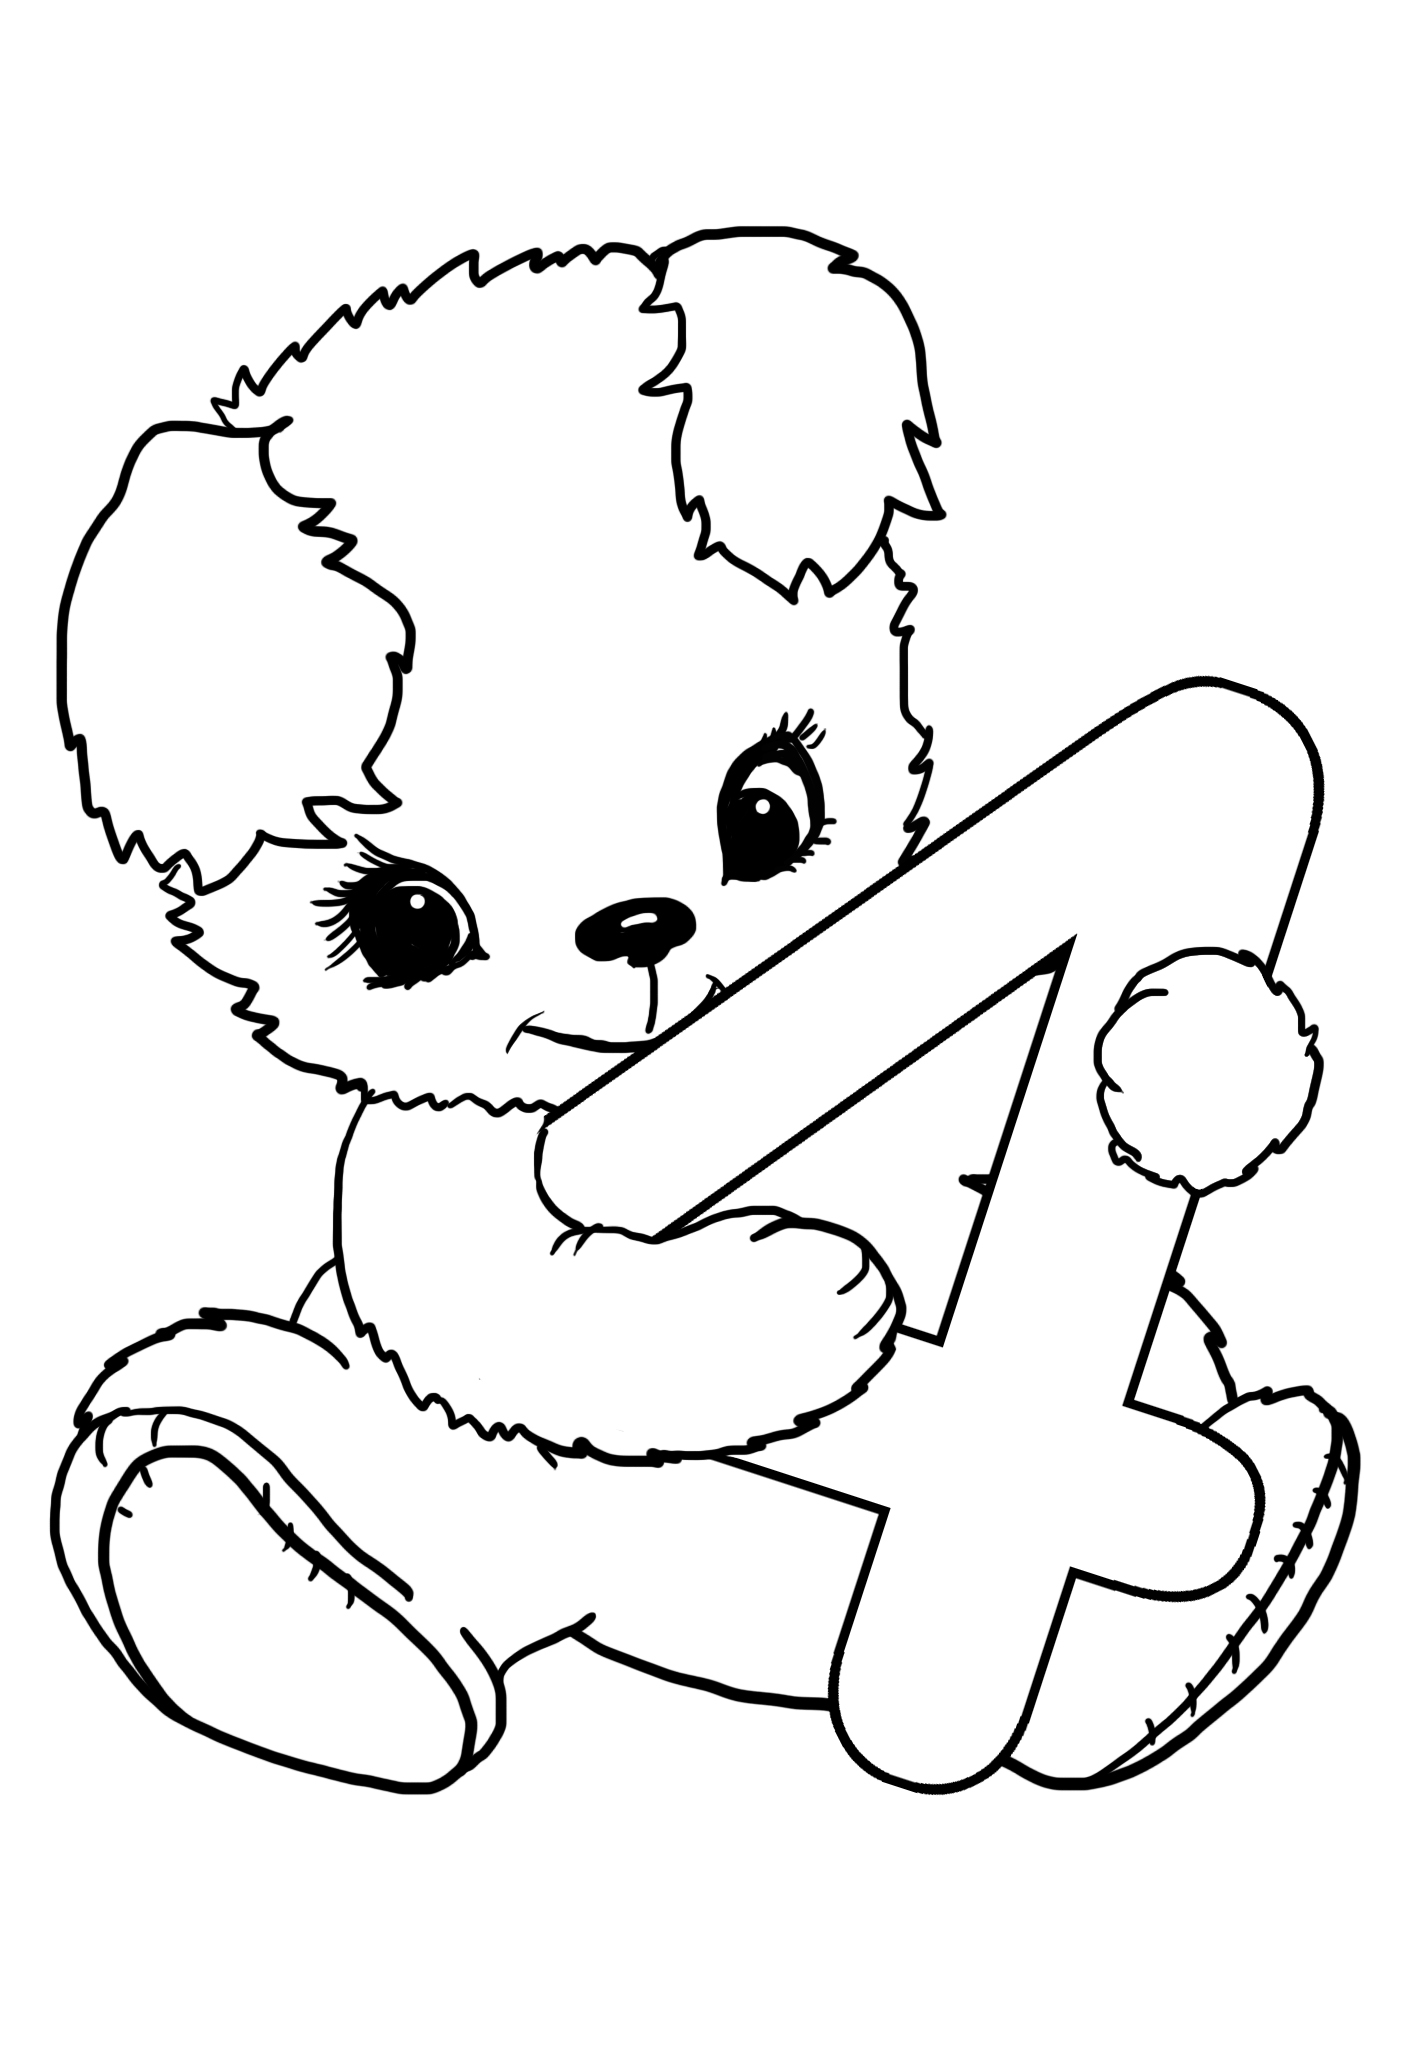 40th birthday coloring pages happy 40th birthday mom love it coloring pages coloring pages coloring 40th birthday